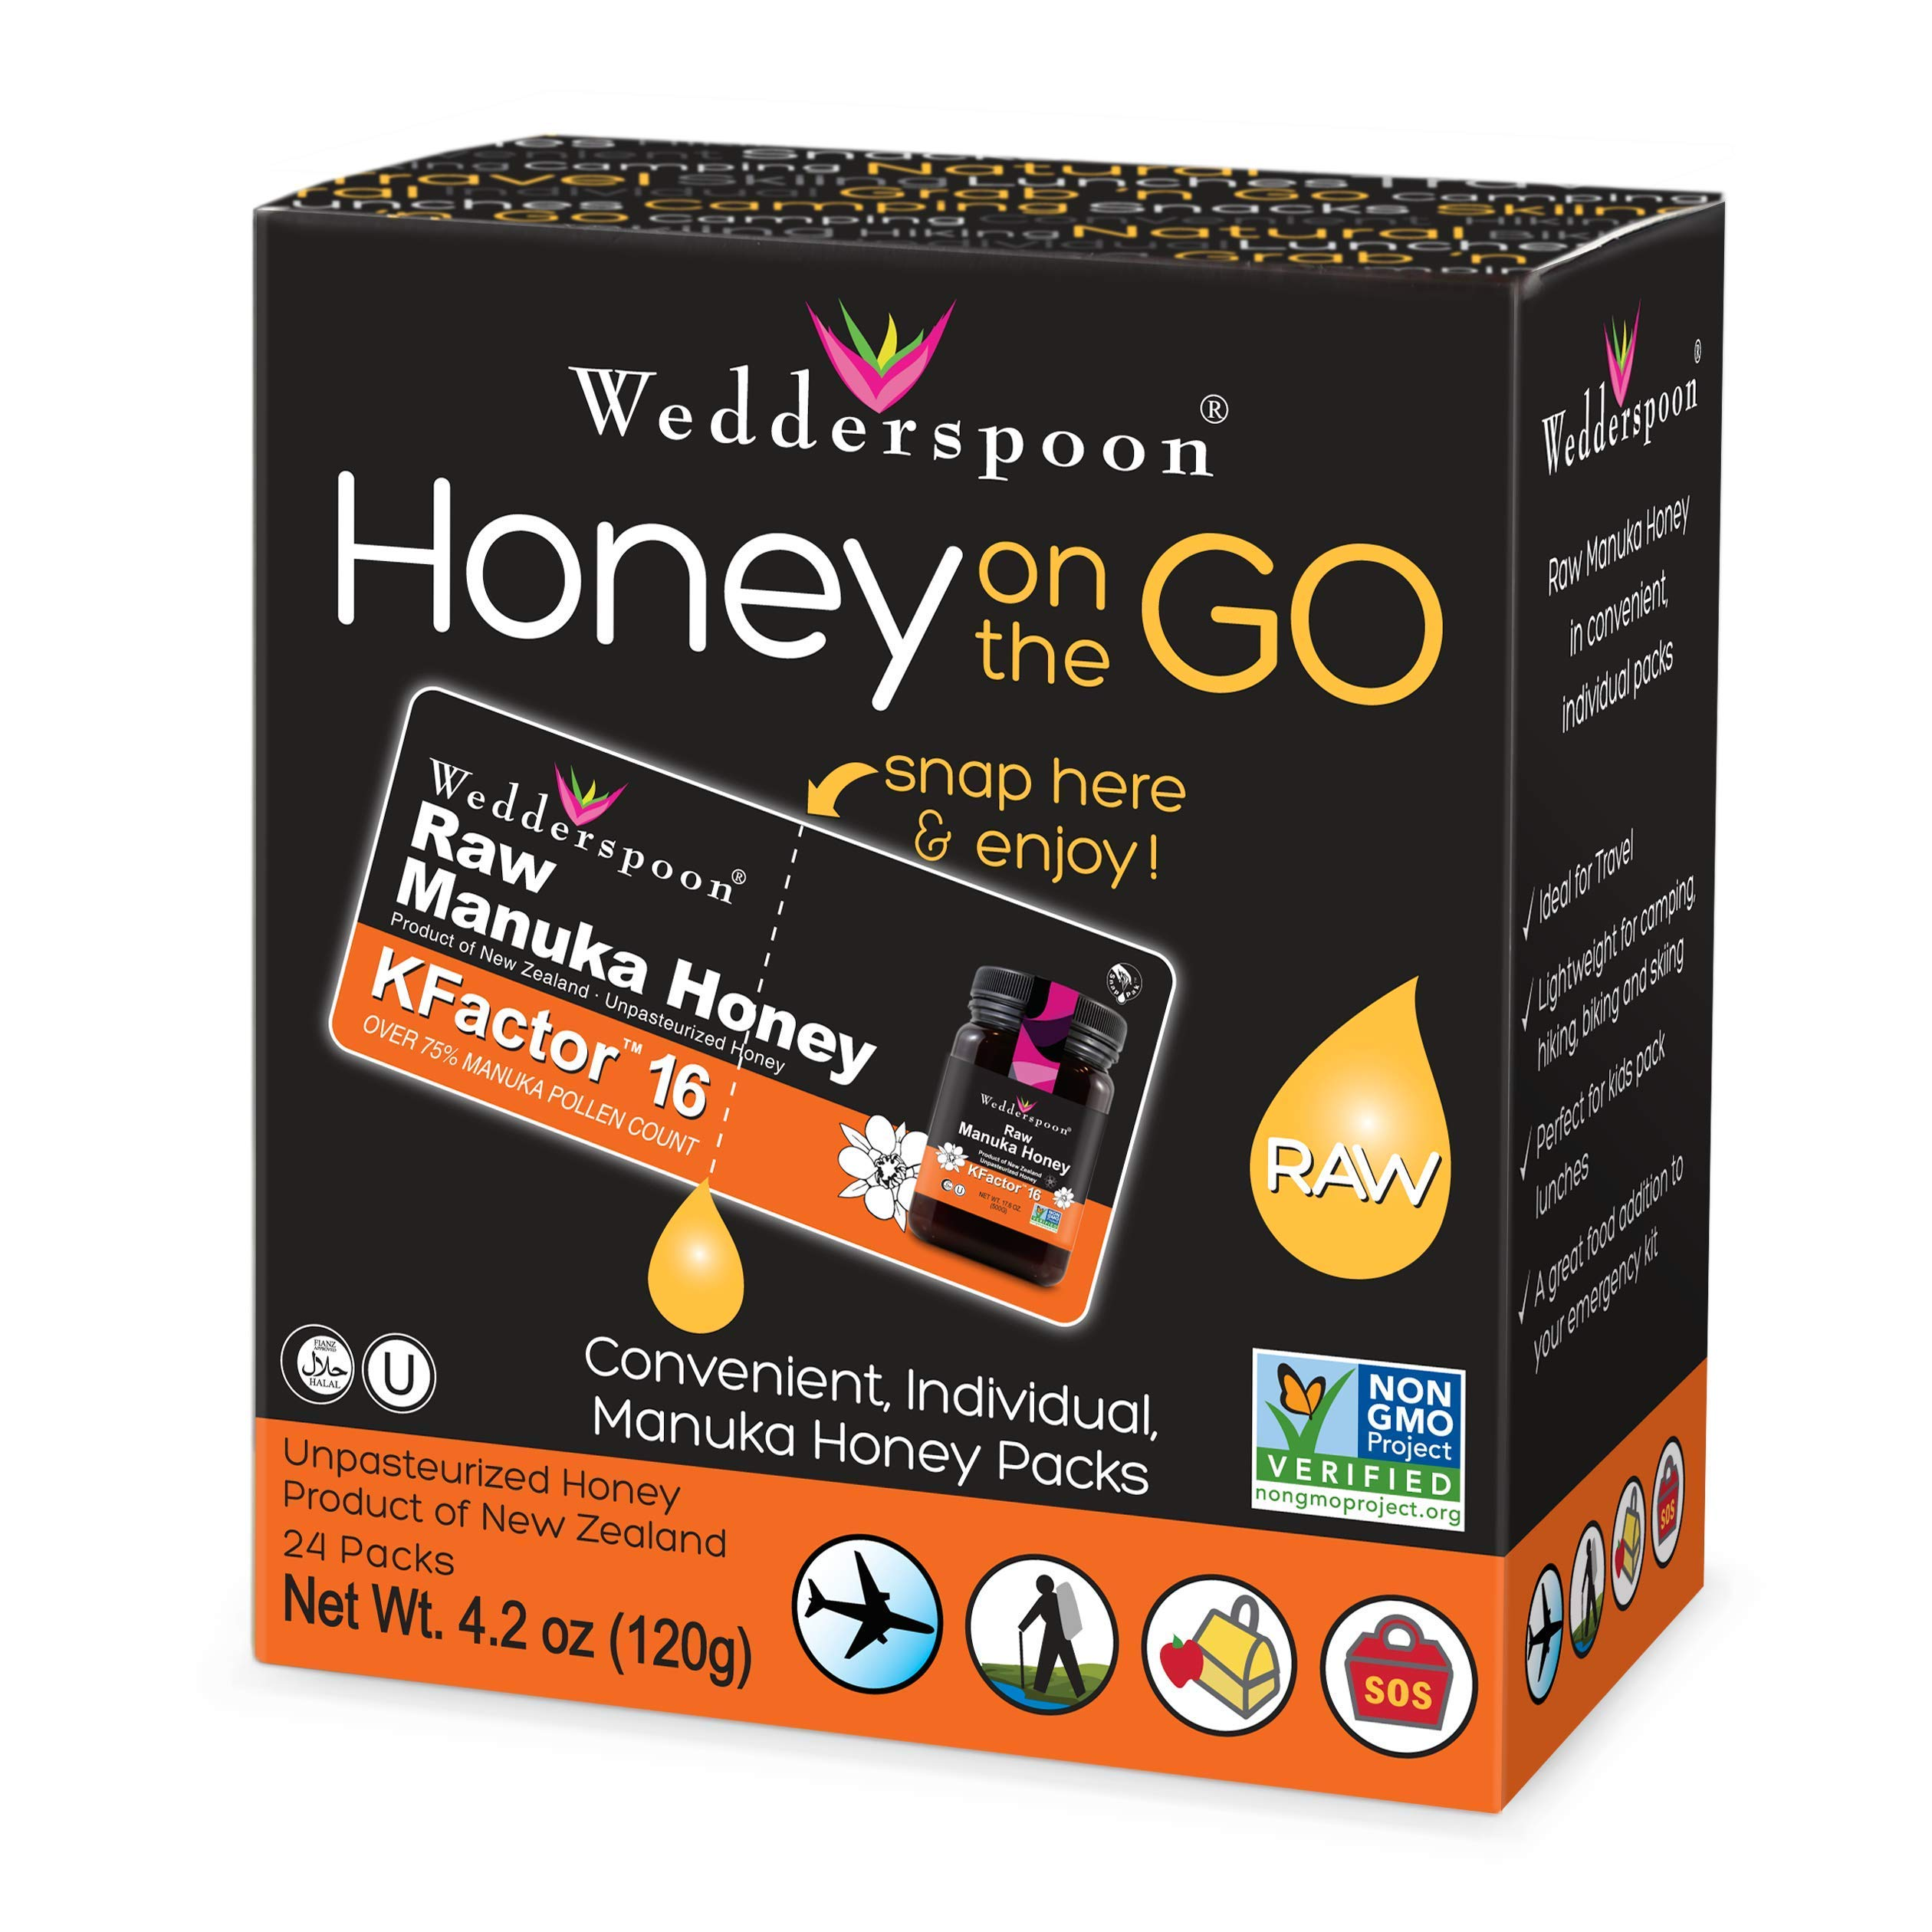 Wedderspoon 100% Raw Manuka Honey KFactor, 24 Count